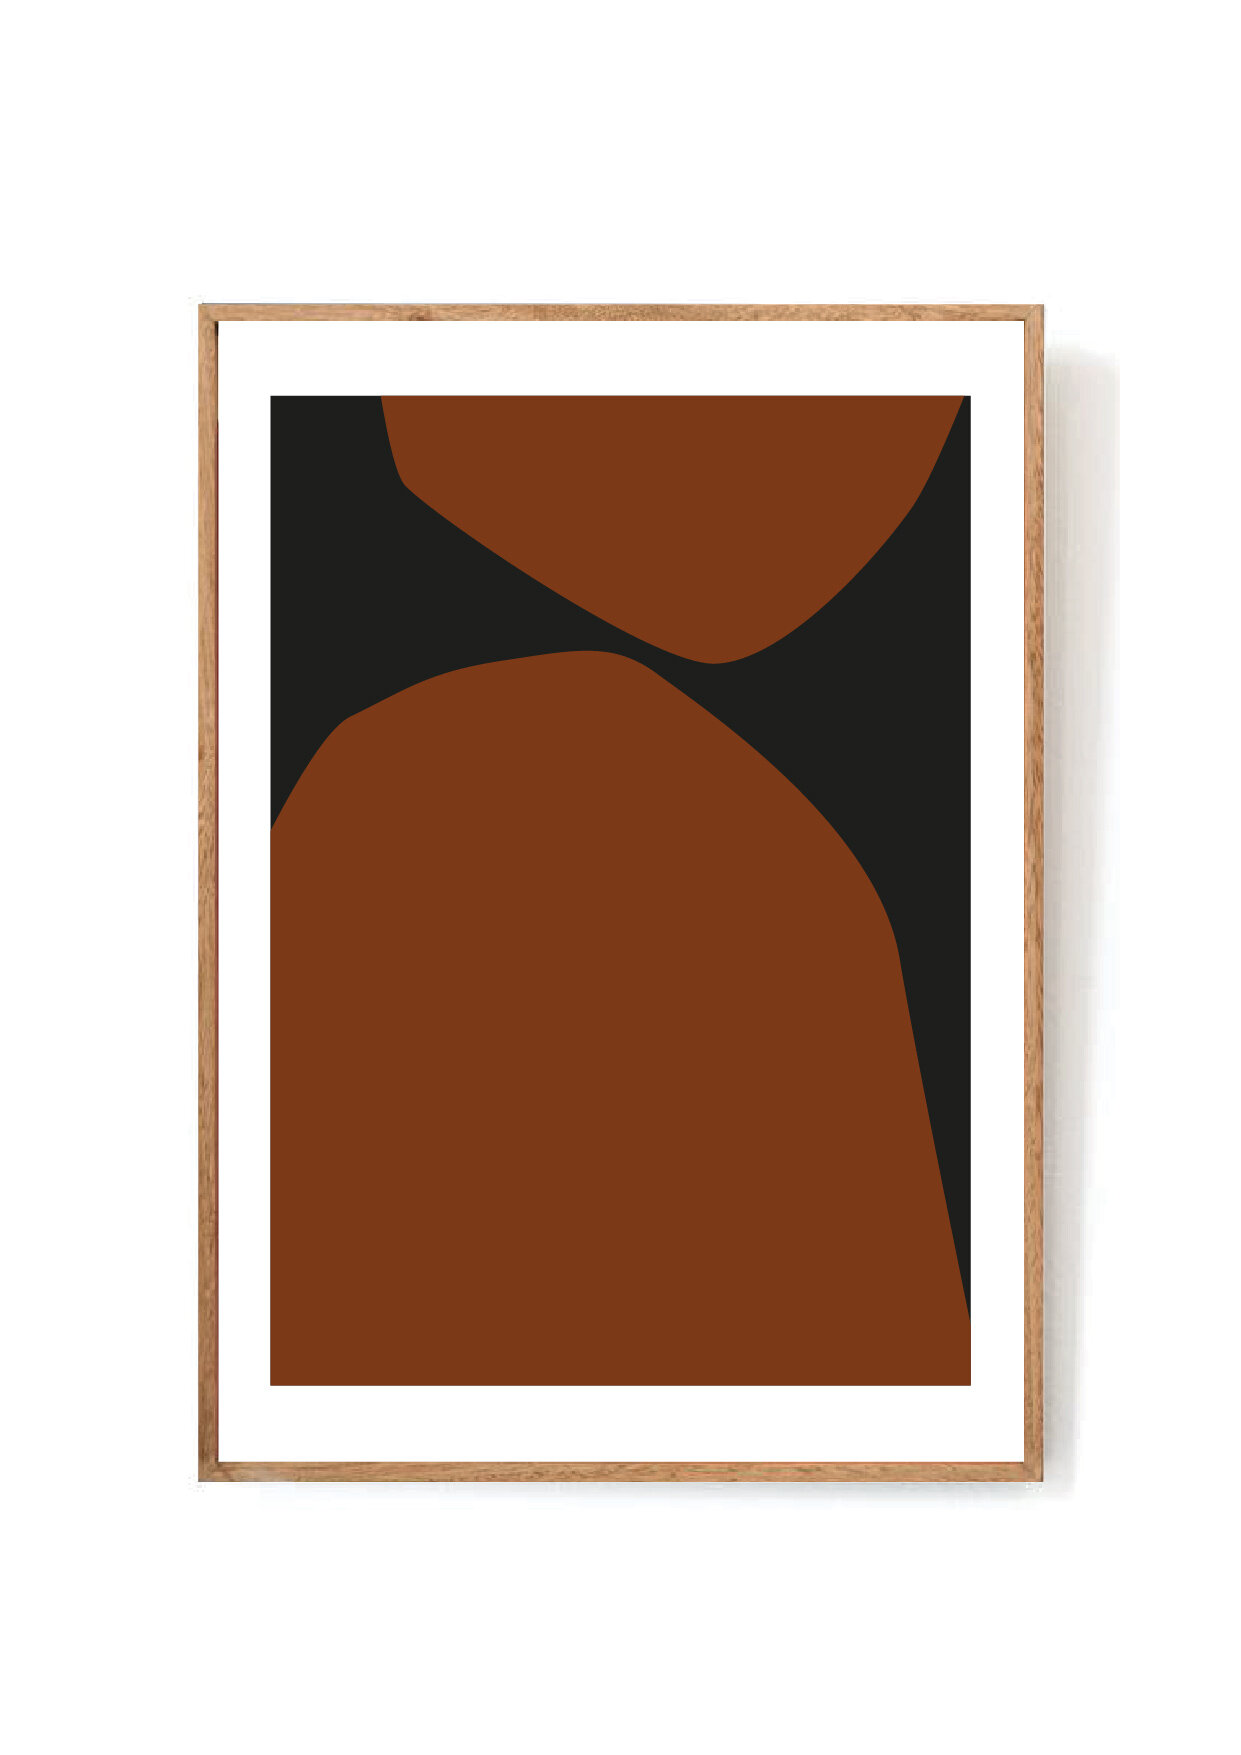 Karok abstract art print with burnt orange rust color and black - interior design trends for fall 2019.jpg